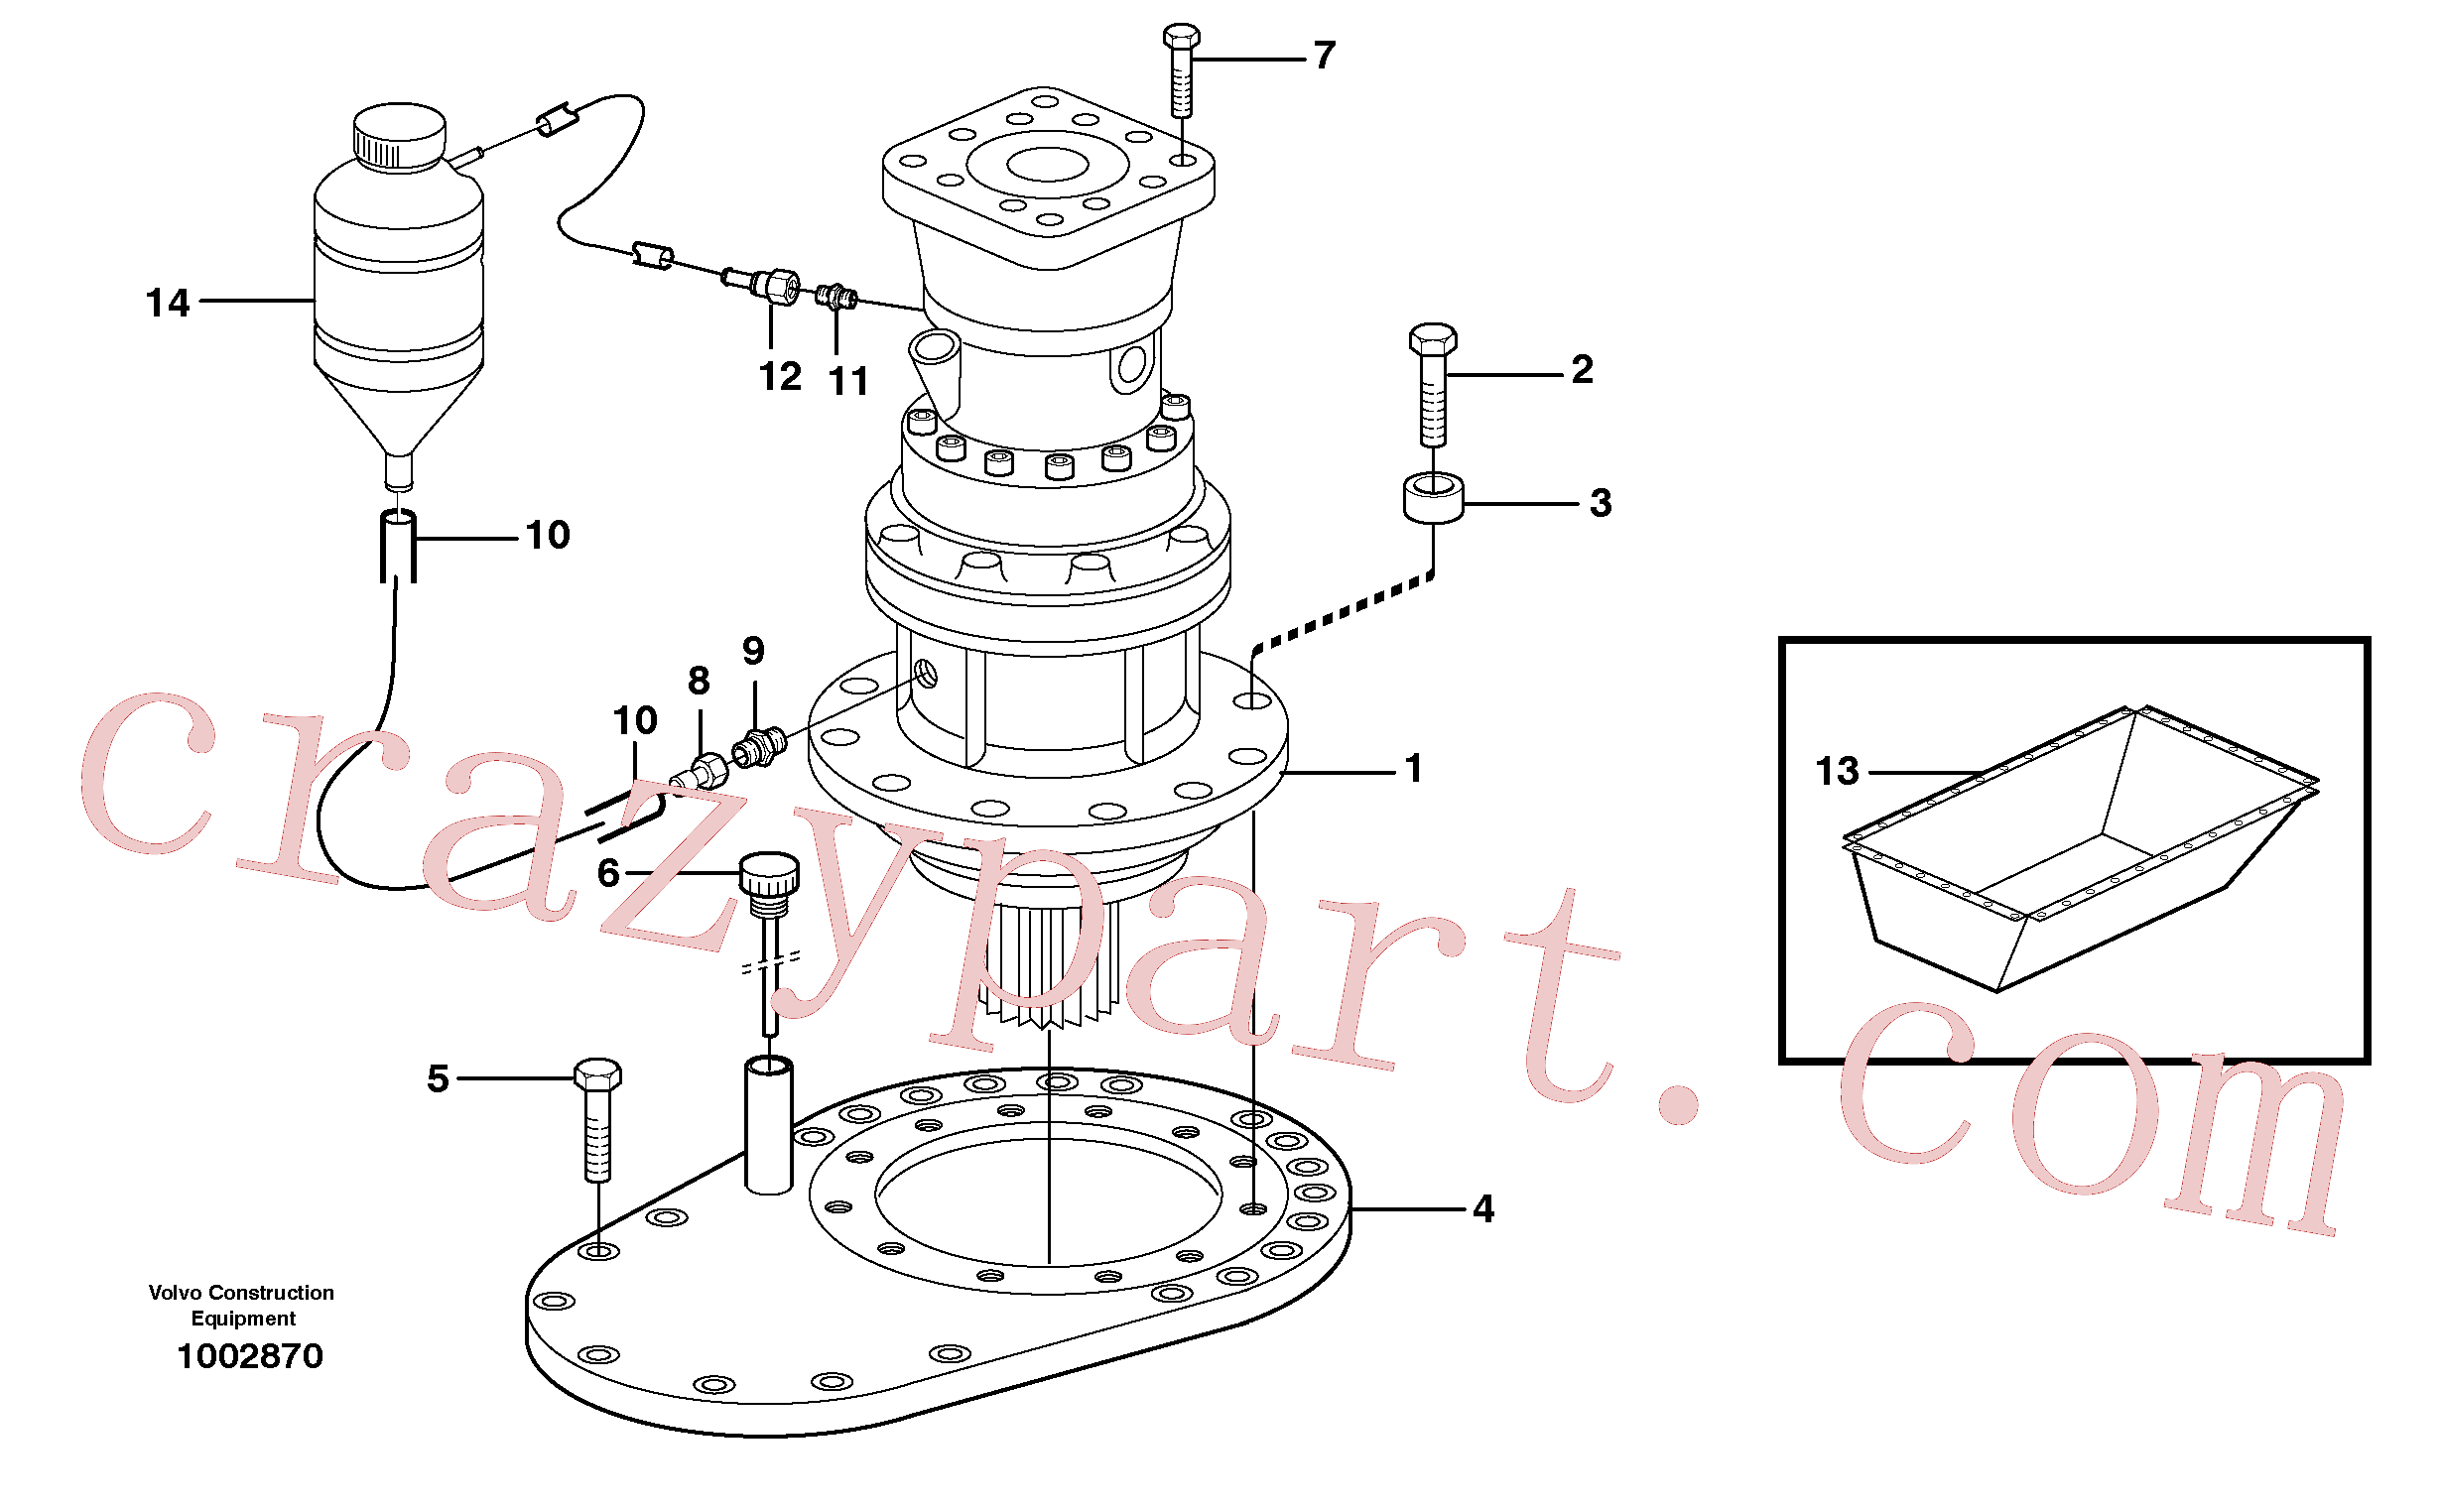 VOE14347088 for Volvo Rebuild kit, Swing gearbox(1002870 assembly)